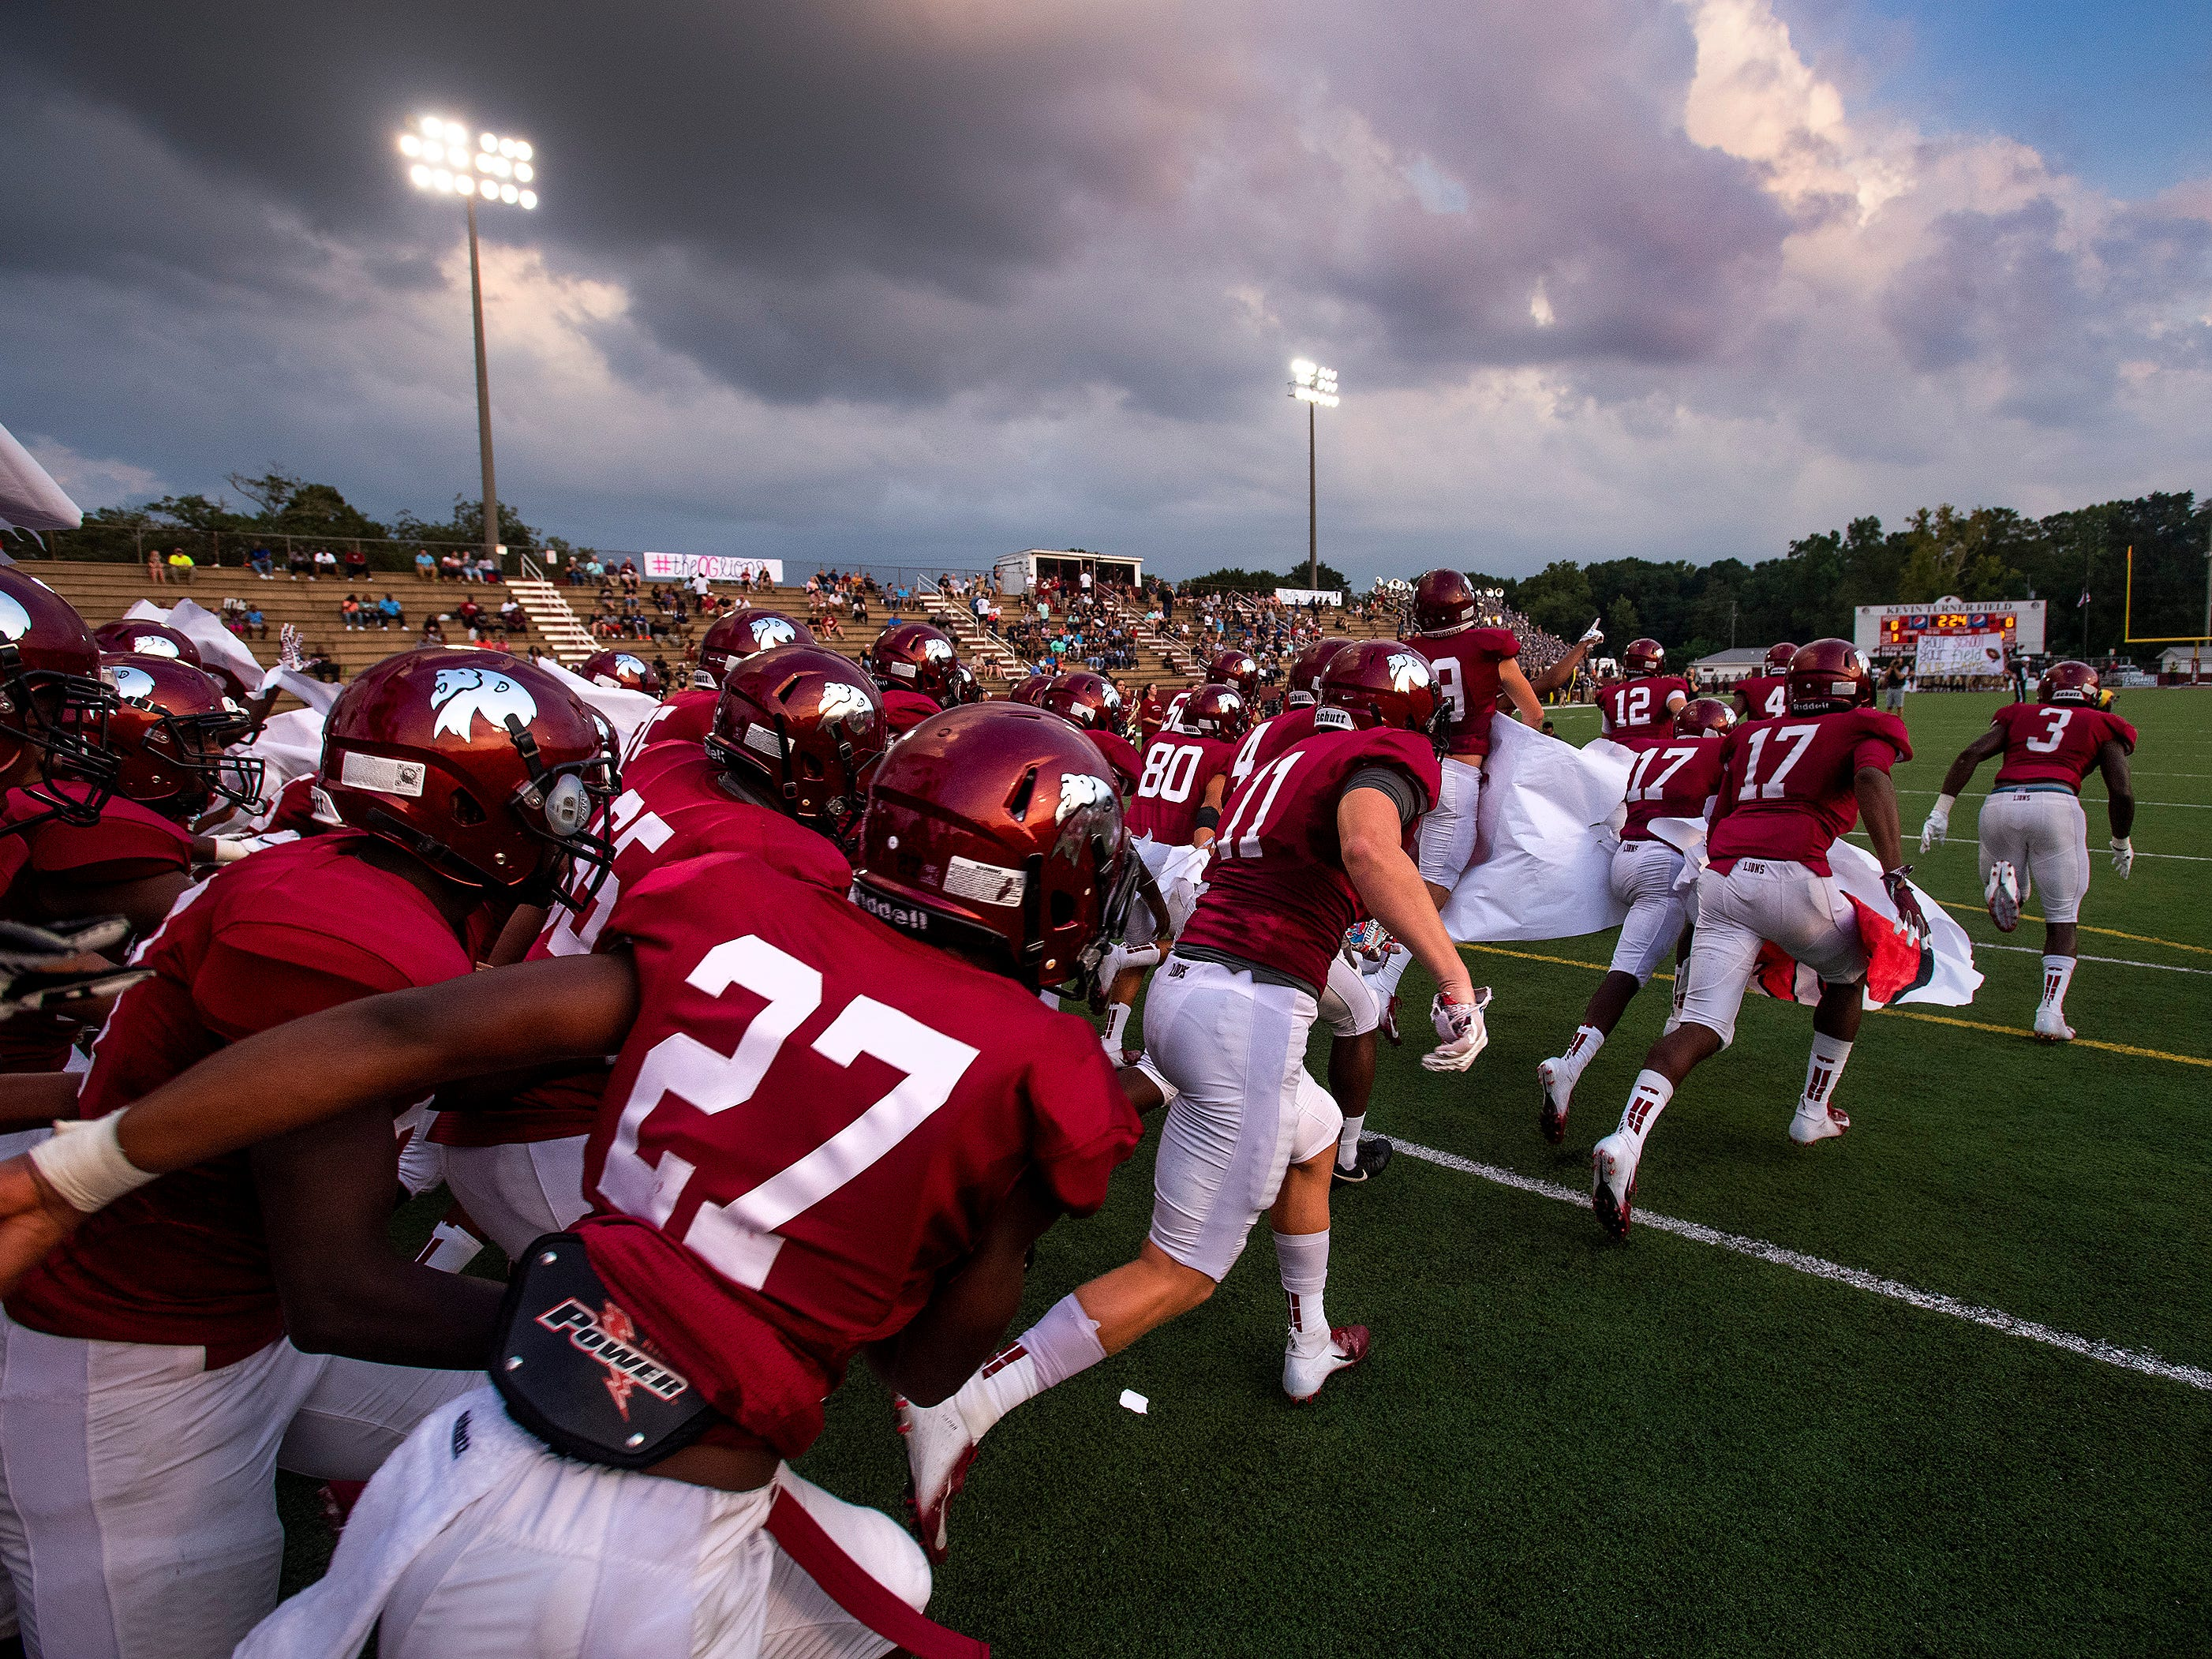 Prattville take the field for the Foley game at Stanley-Jensen Stadium in Prattville, Ala., on Friday August 24, 2018.